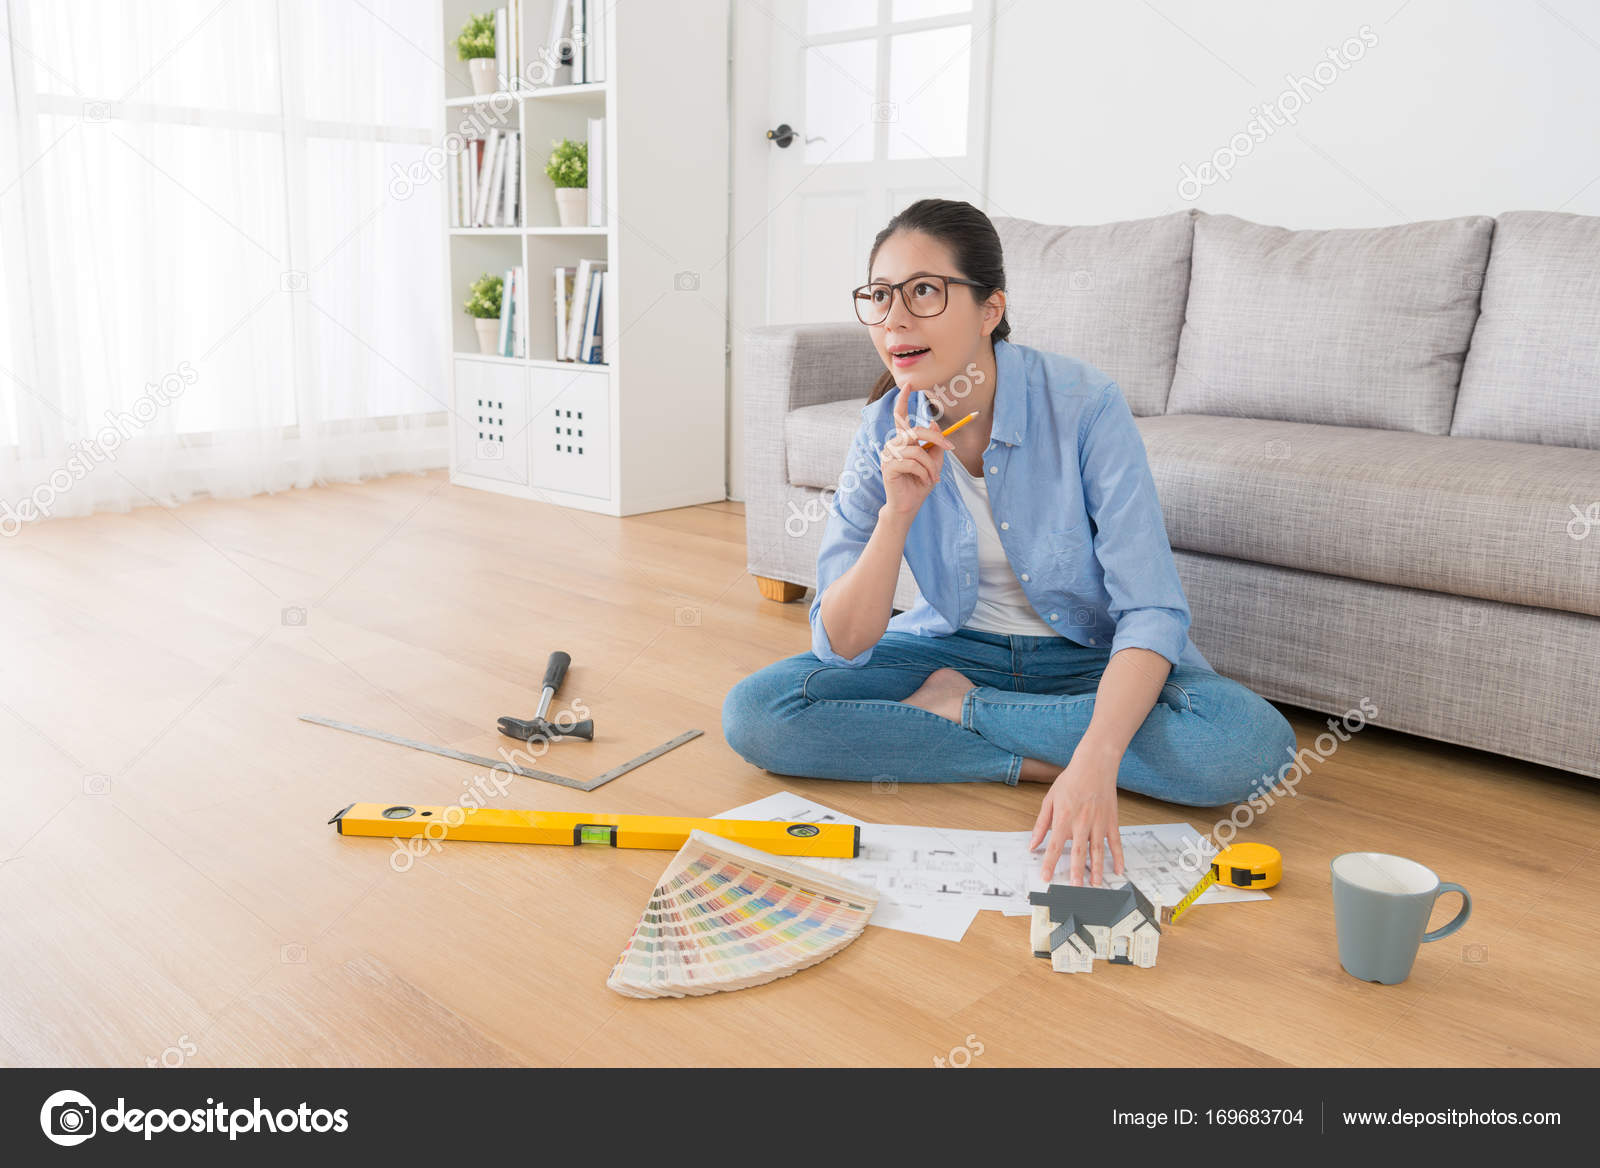 Beautiful Sweet Female Interior Design Engineer Thinking Drawing  Inspiration Idea And Sitting In Living Room Wooden Floor With Sketch Tool.